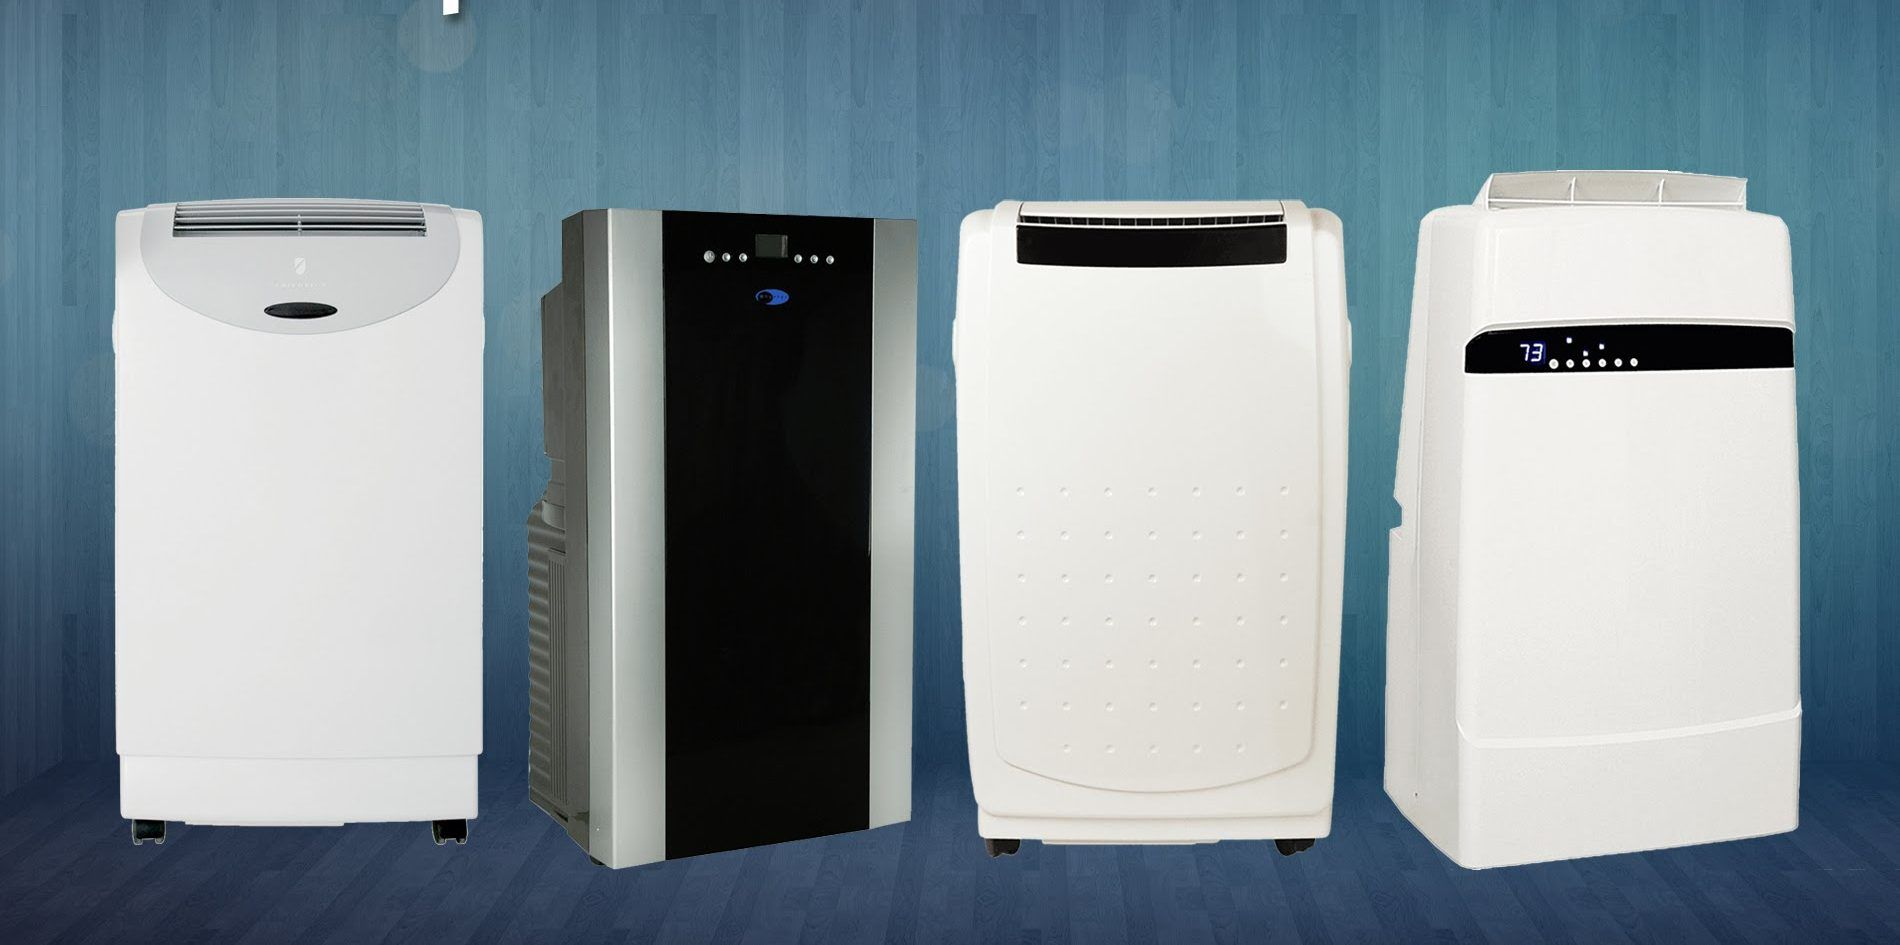 The Best Discounts on Vertical Air Conditioners 2017